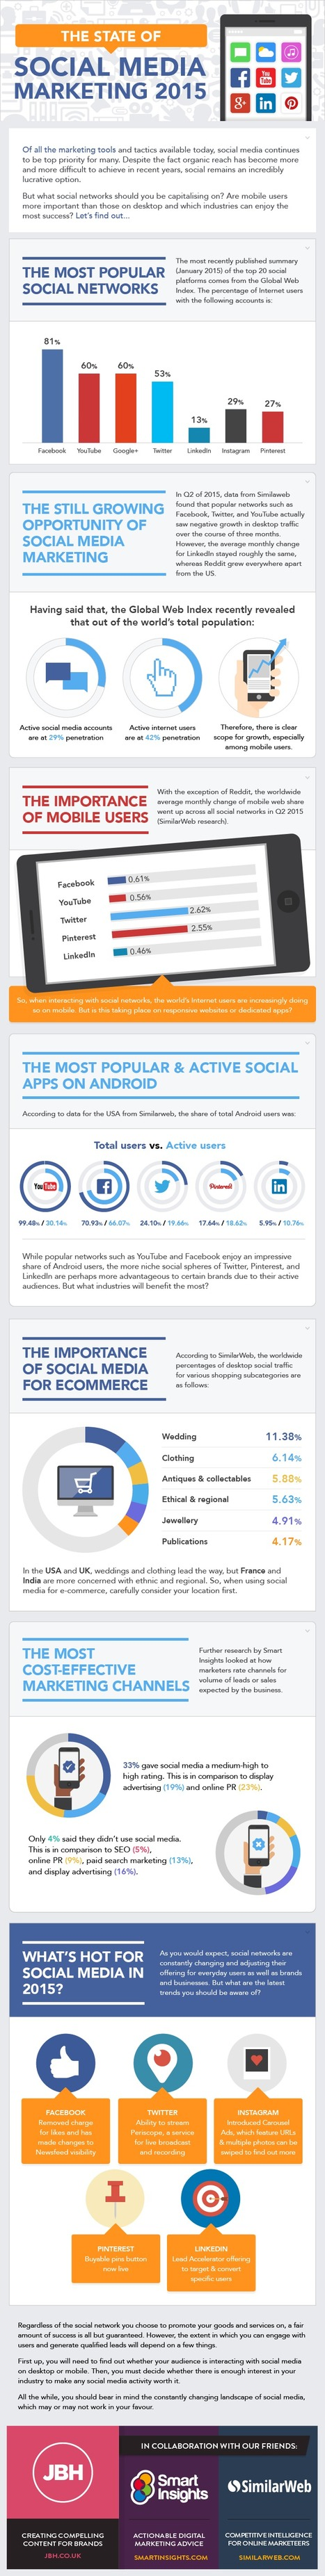 The 2015 State of Social Media Marketing [INFOGRAPHIC] | Integrated Brand Communications | Scoop.it